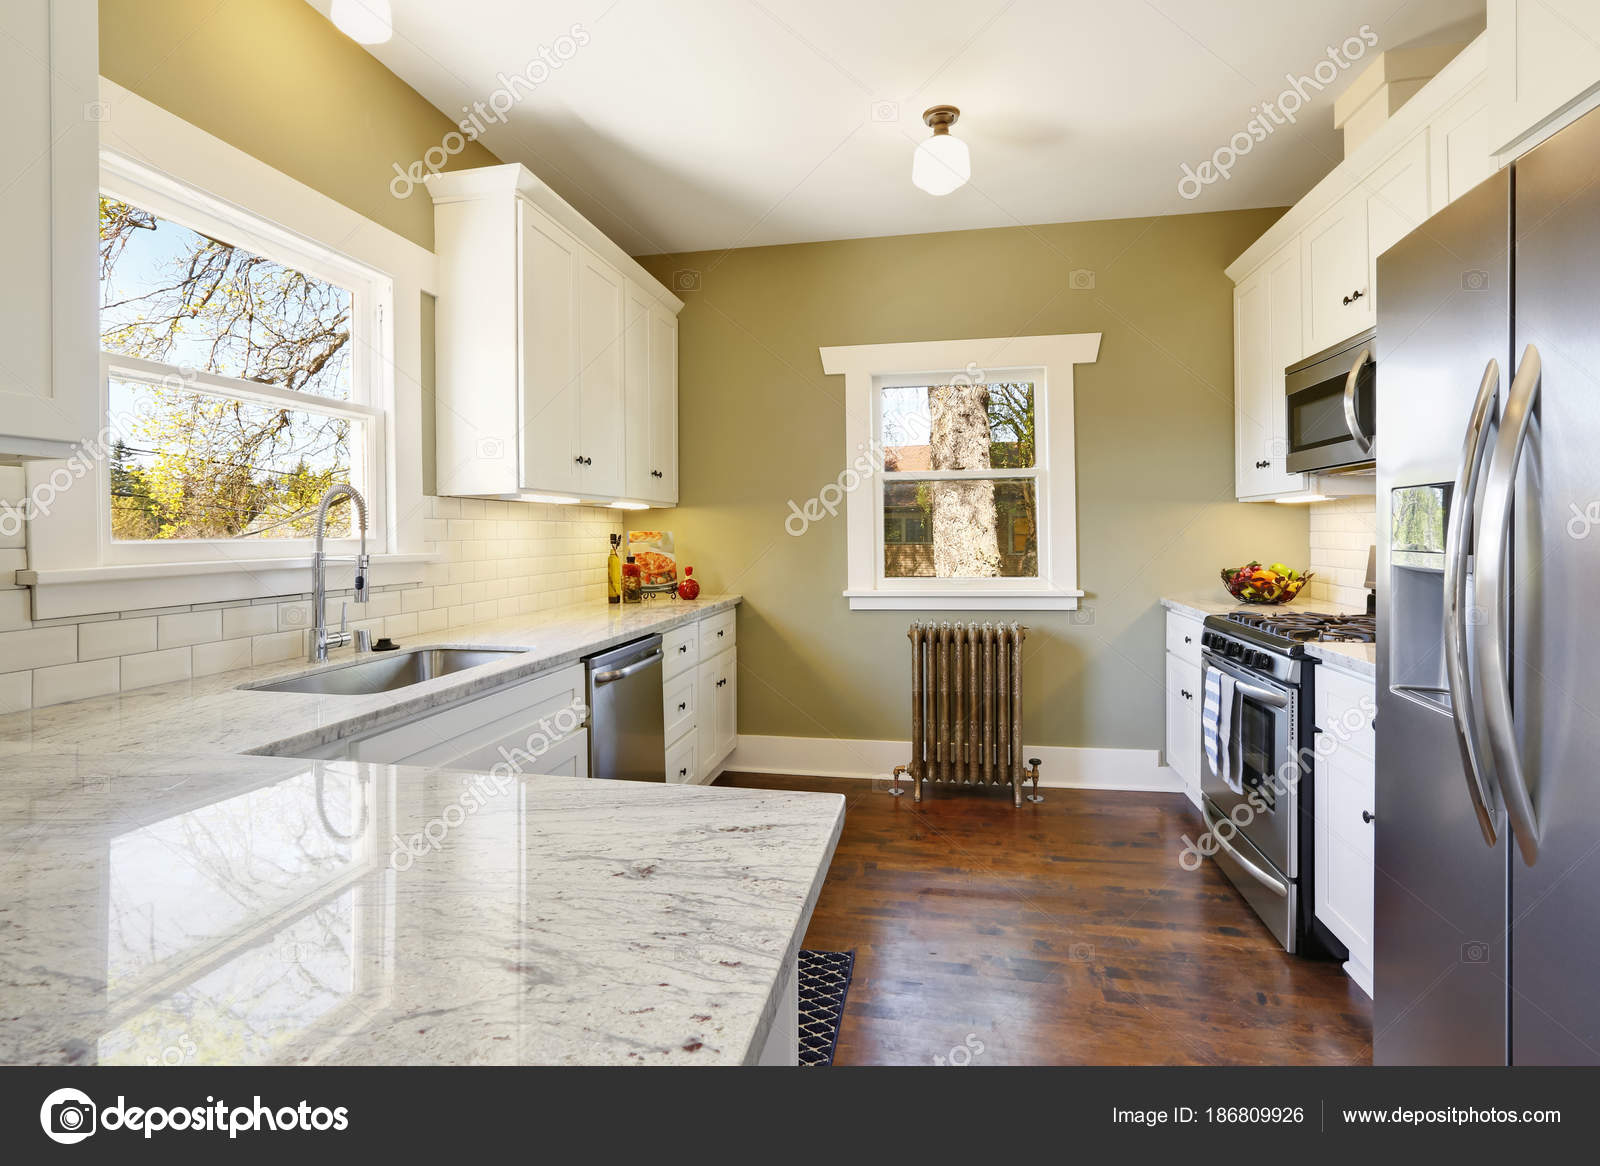 Olive green wall color | Freshly updated white and green ...